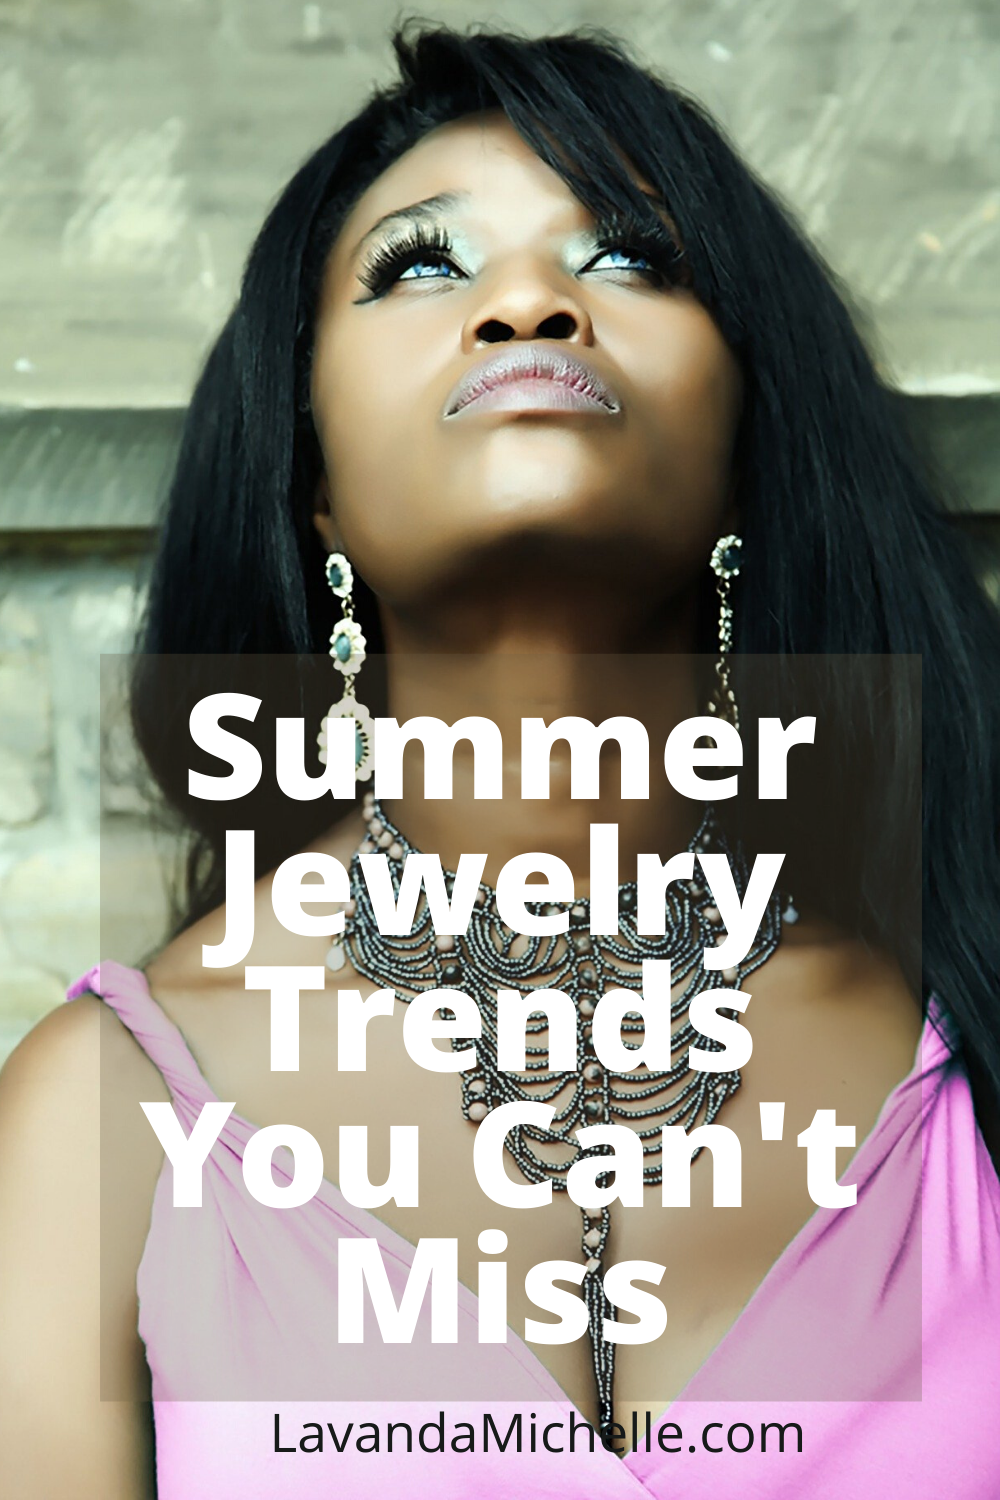 Summer Jewelry Trends You Can't Miss